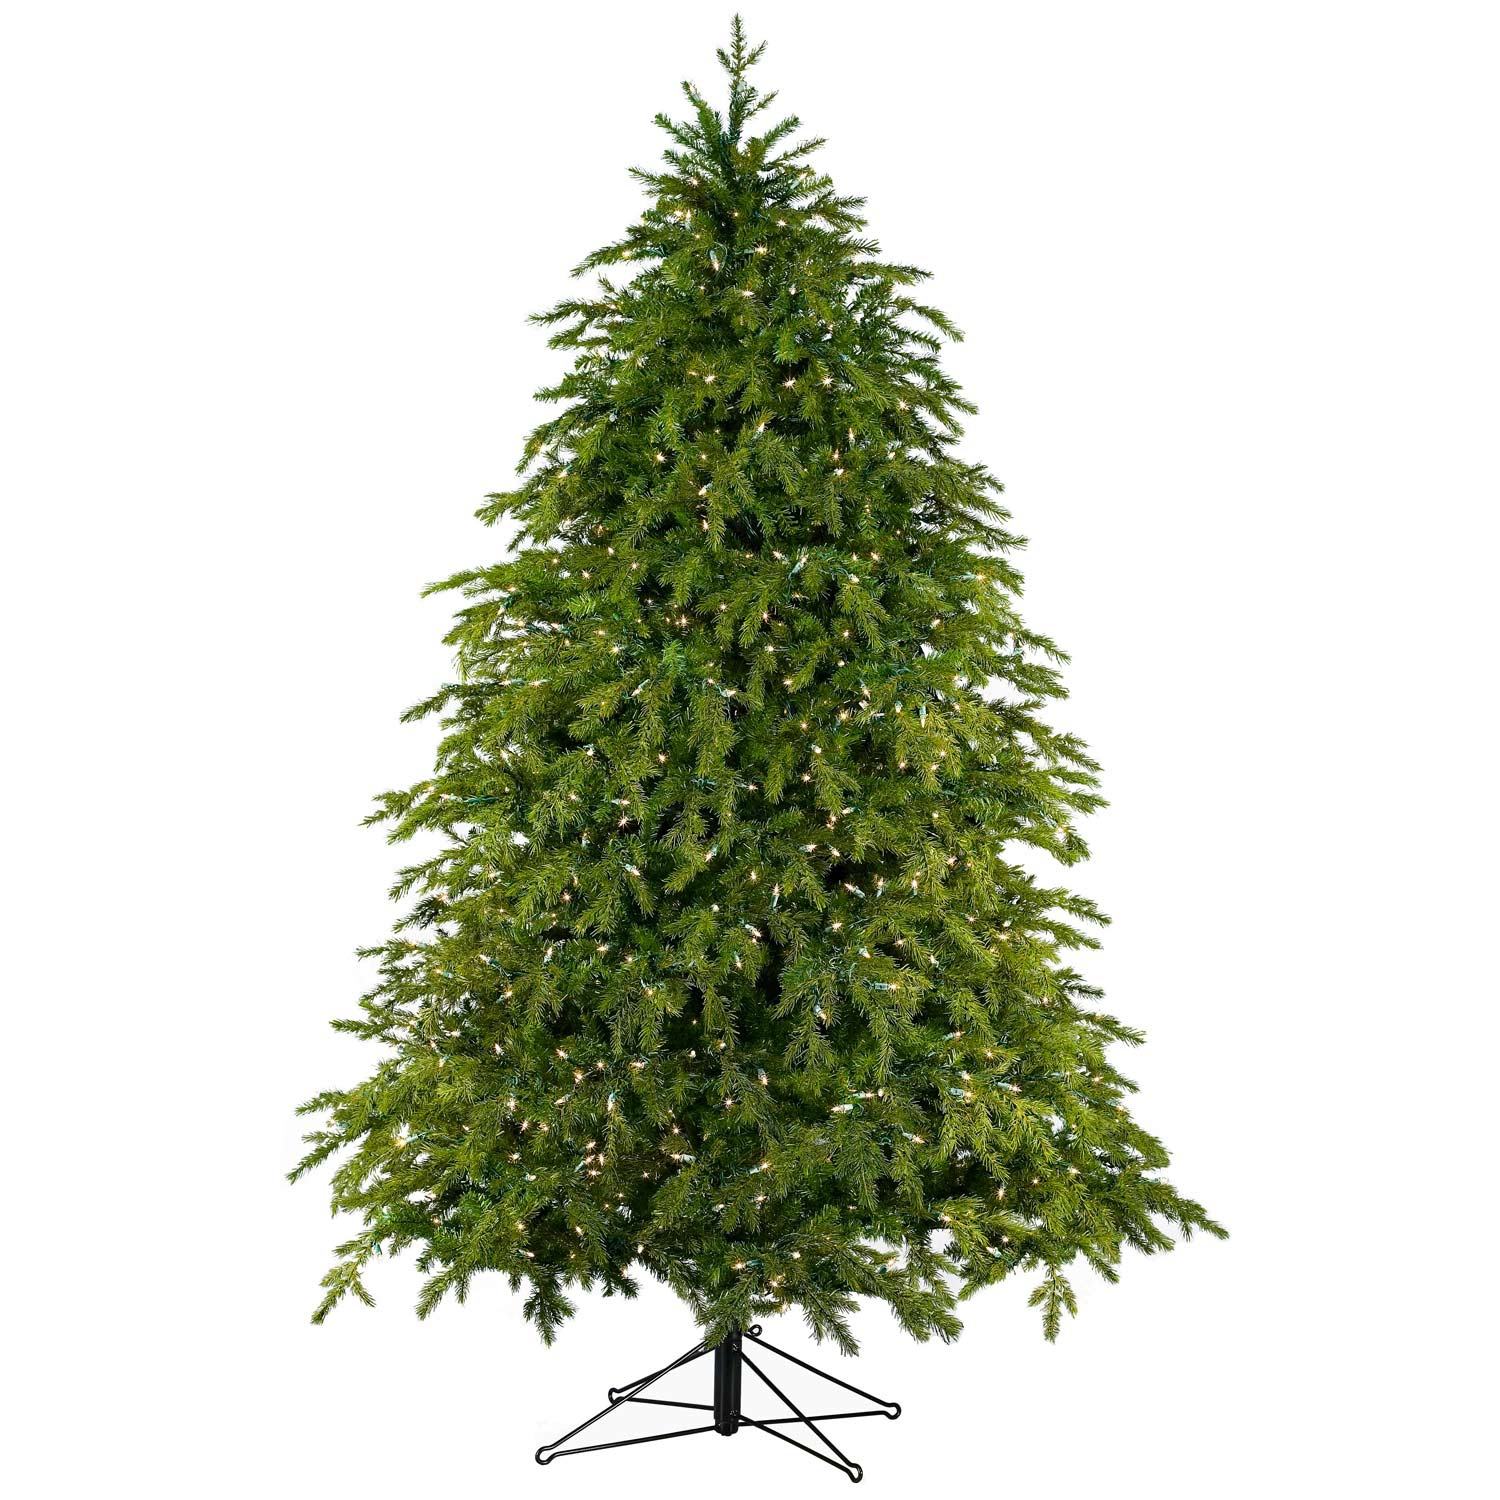 Live Christmas Tree For Sale